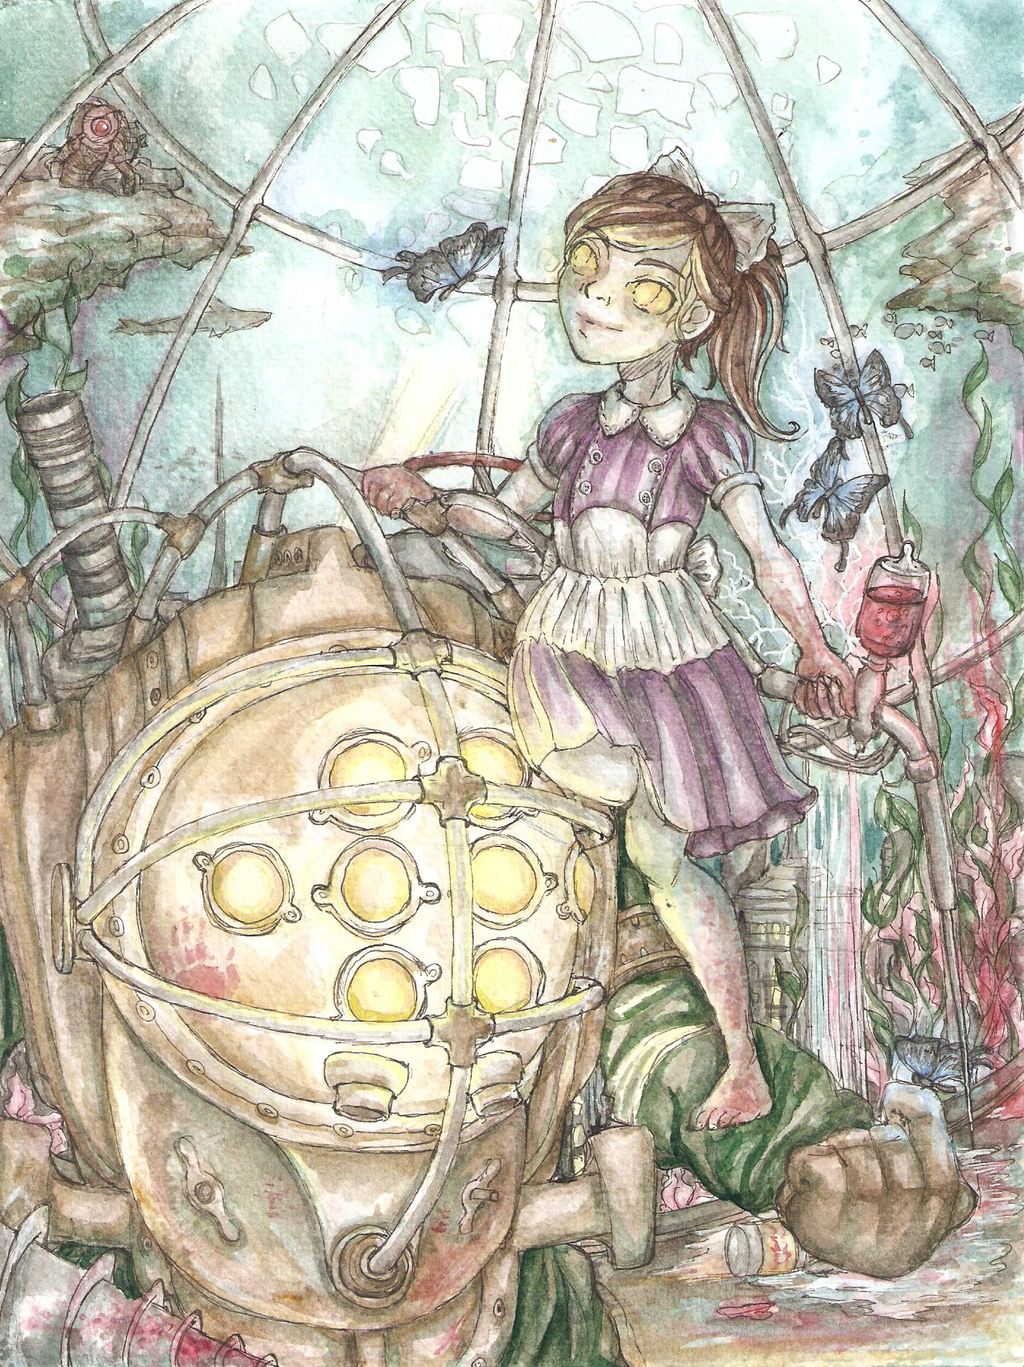 Bioshock 2: Big Daddy and Little Sister by Ruinless